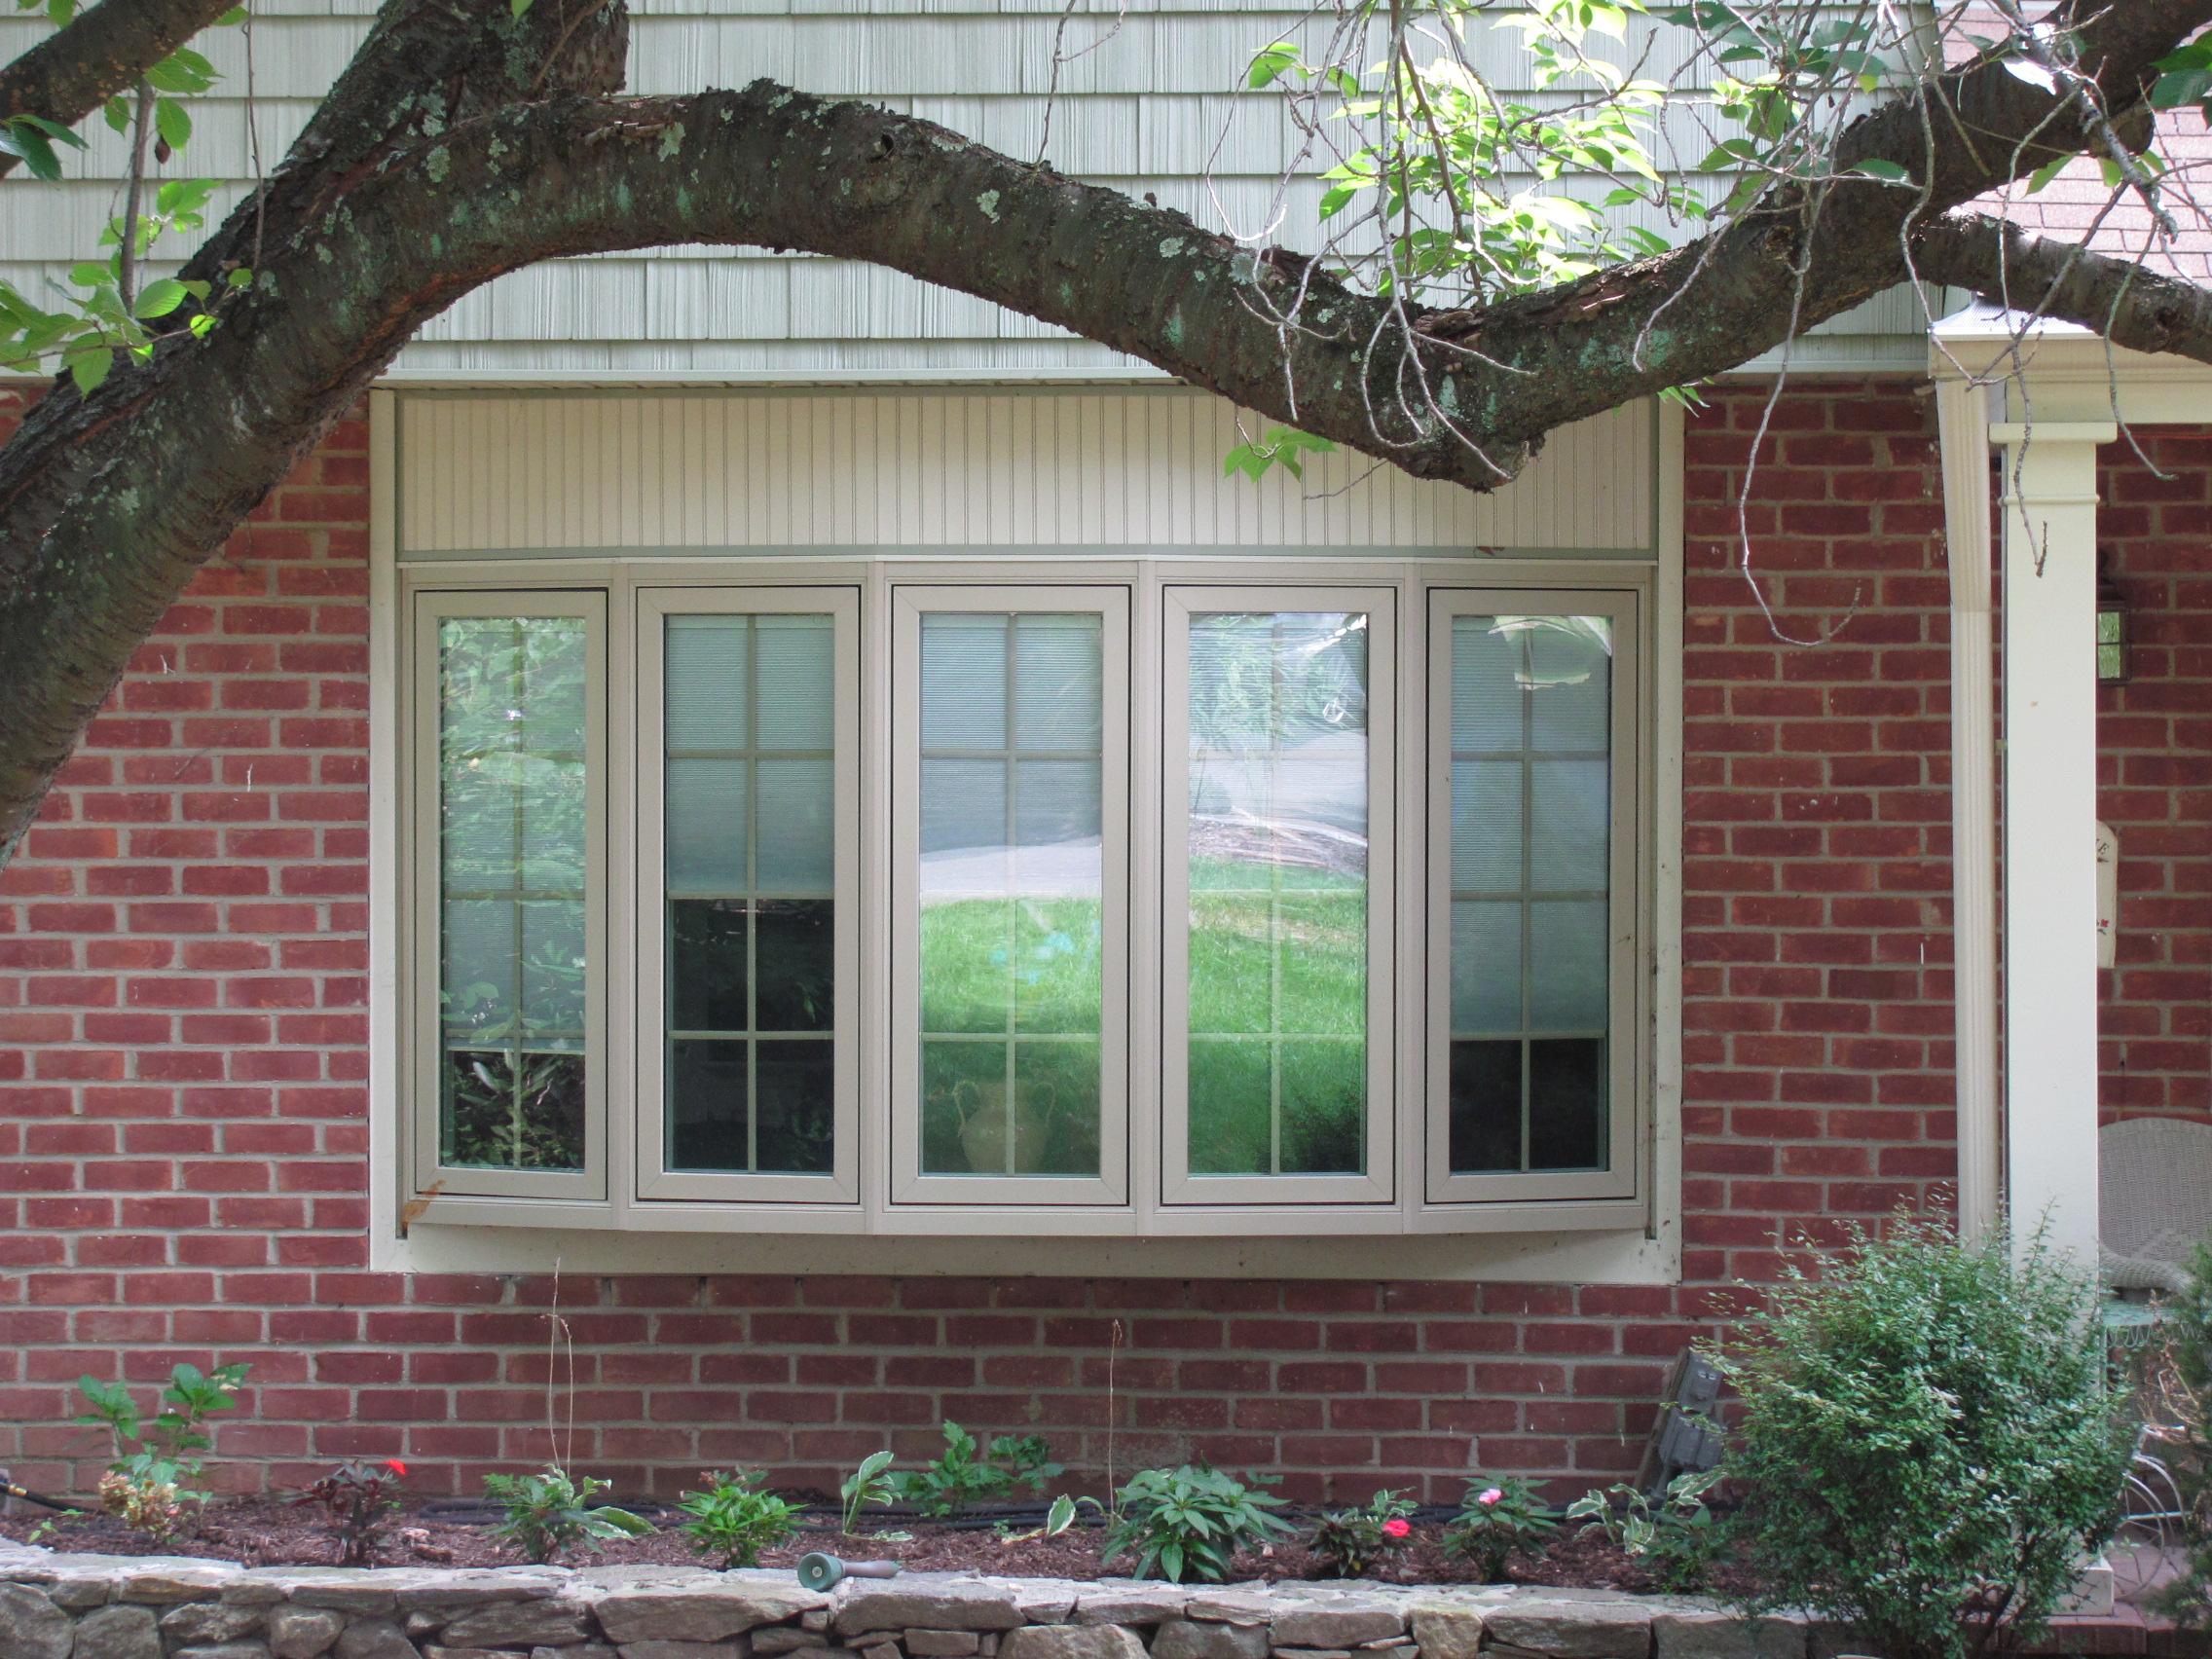 wheat pella windows matched with terra cotta brick wall ideas